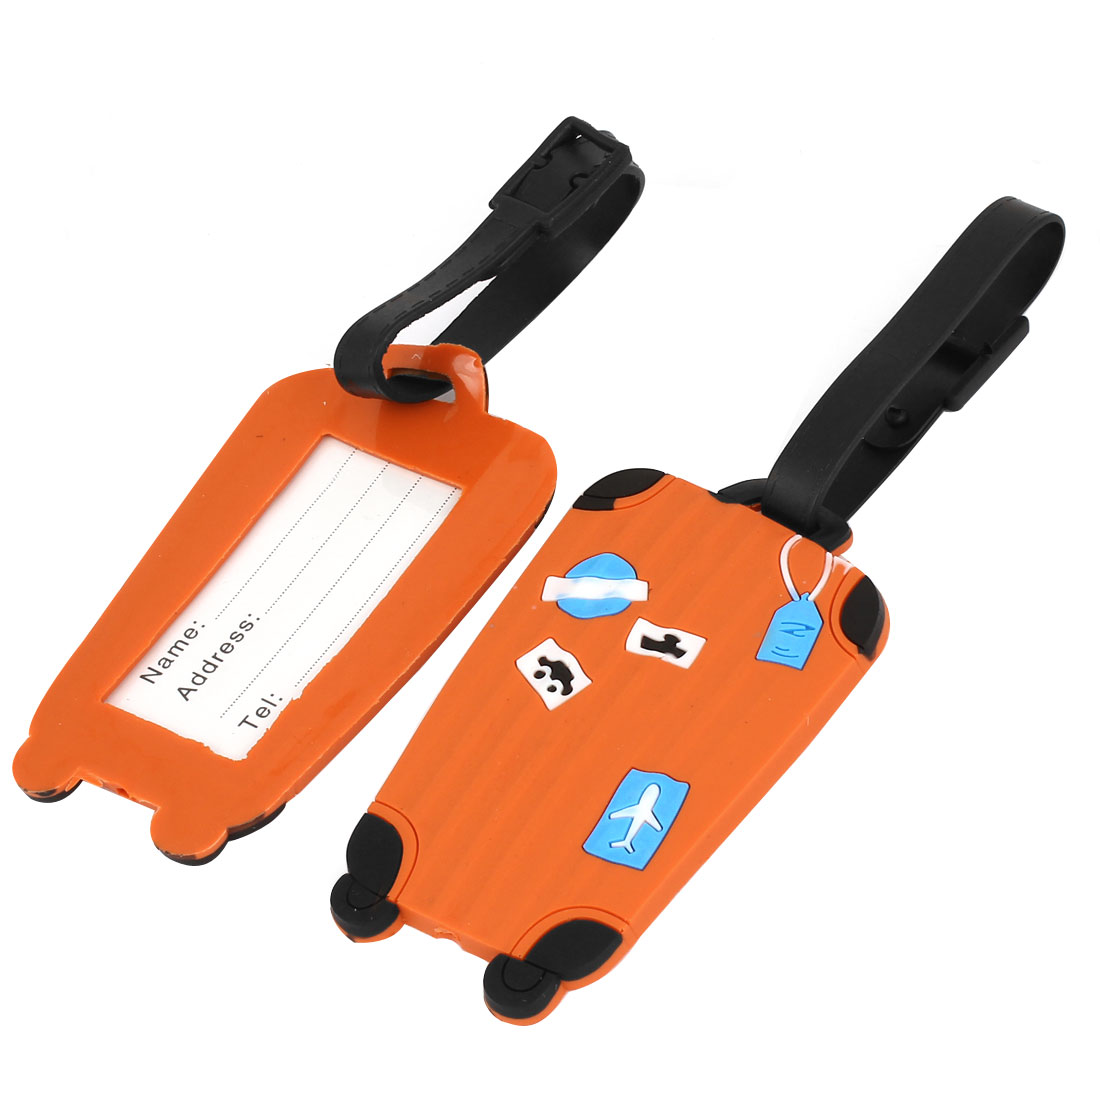 Cyan Plane Car Ship Pattern Orange Soft Plastic Luggage Baggage Tag 2 Pcs